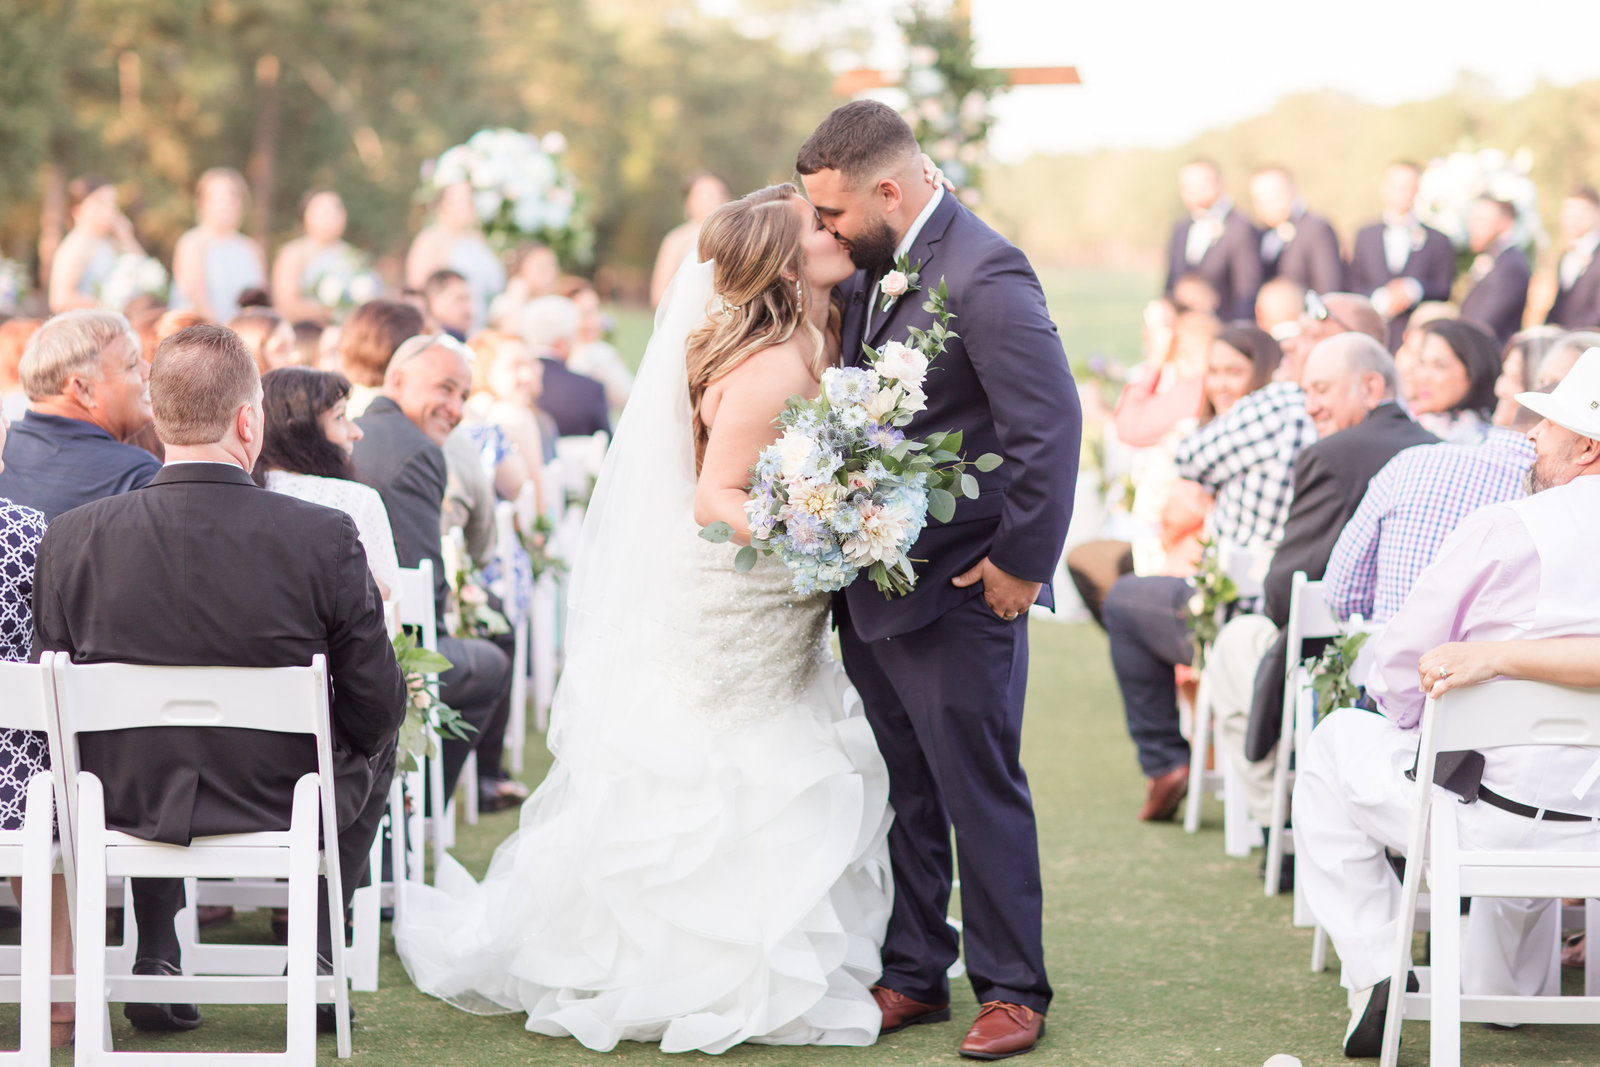 Jennifer_B_Photography-Pinehurst_Club-Pinehurst_NC-Wedding_Day-Caleb___Miranda-JB_Favs-2019-0177